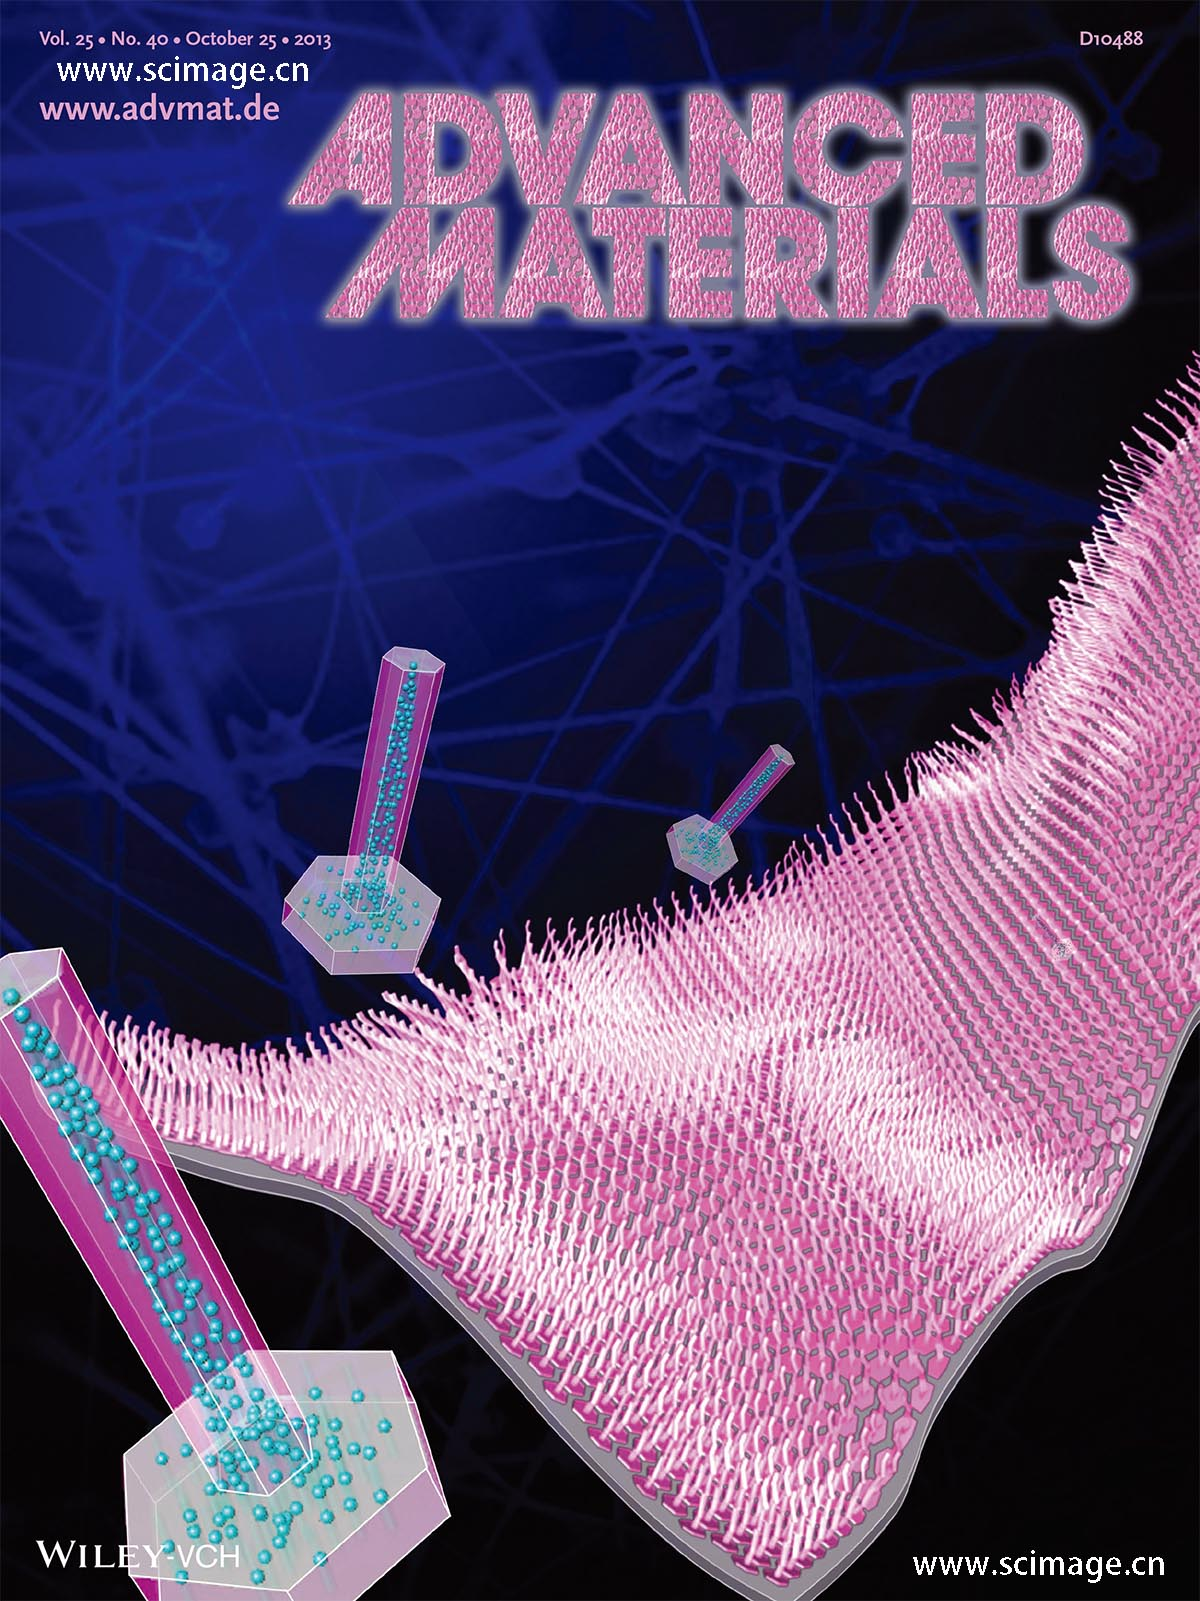 Field Emitters: Epitaxial ZnO Nanowire-on-Nanoplate Structures as Efficient and Transferable Field Emitters (Adv. Mater. 40/2013)